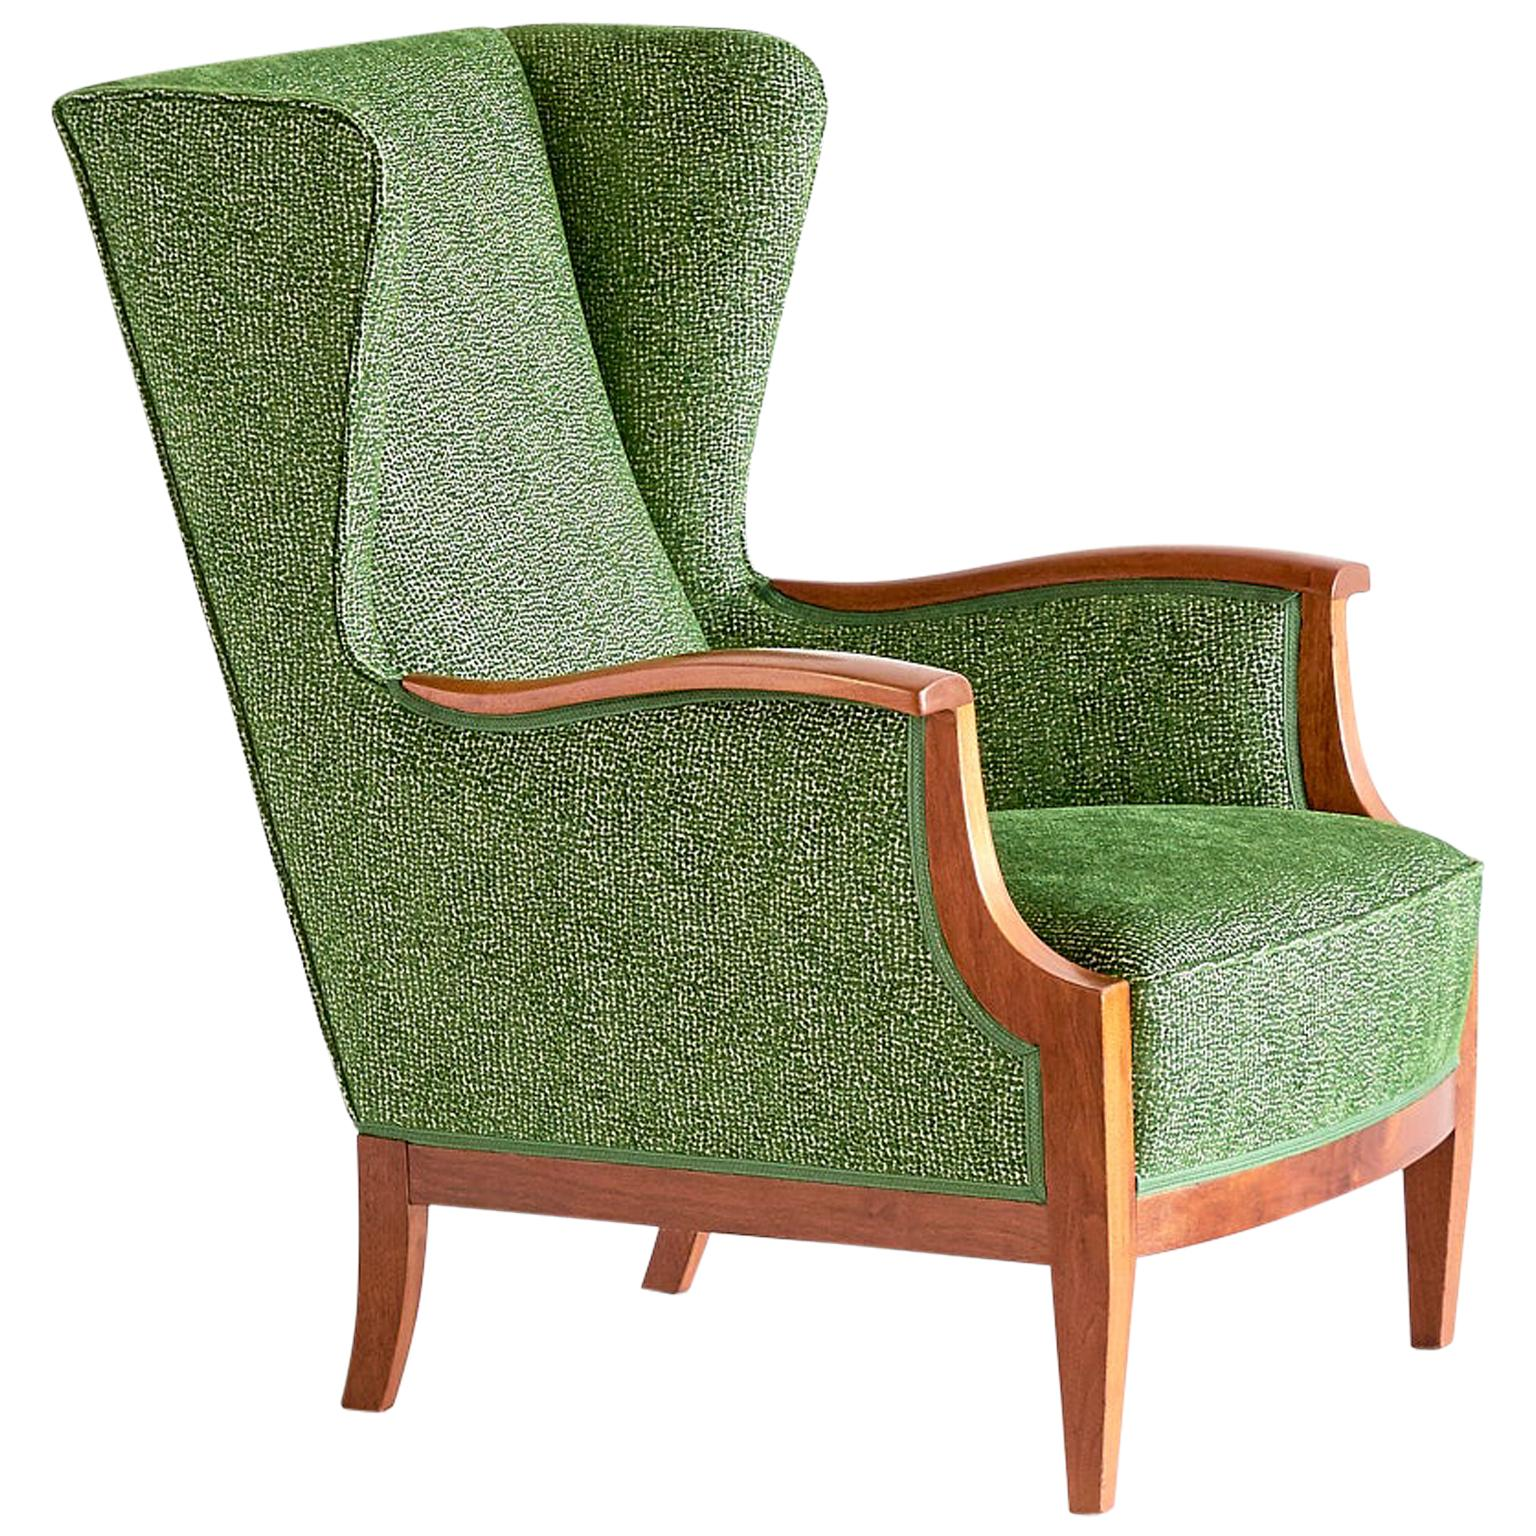 Frits Henningsen Wingback Chair in Mahogany and Green Rubelli Fabric, 1930s